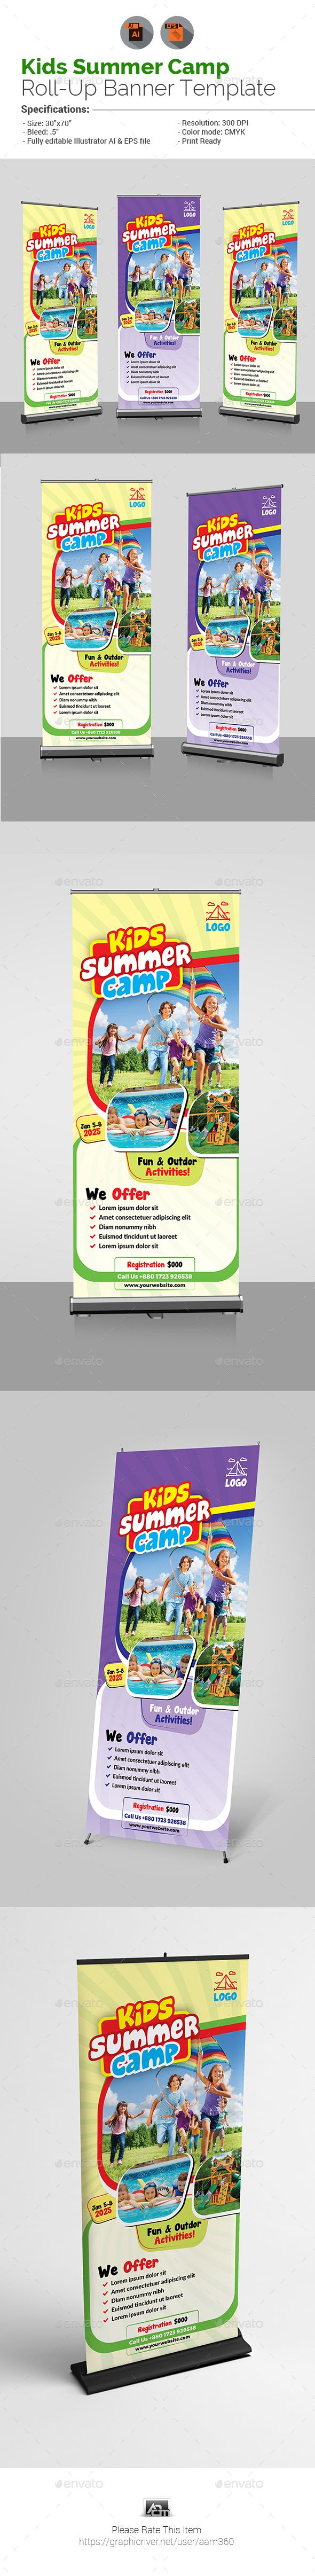 Kids Summer Camp Roll Up Banner Template by aam360 Similar Templates:INFORMATION...